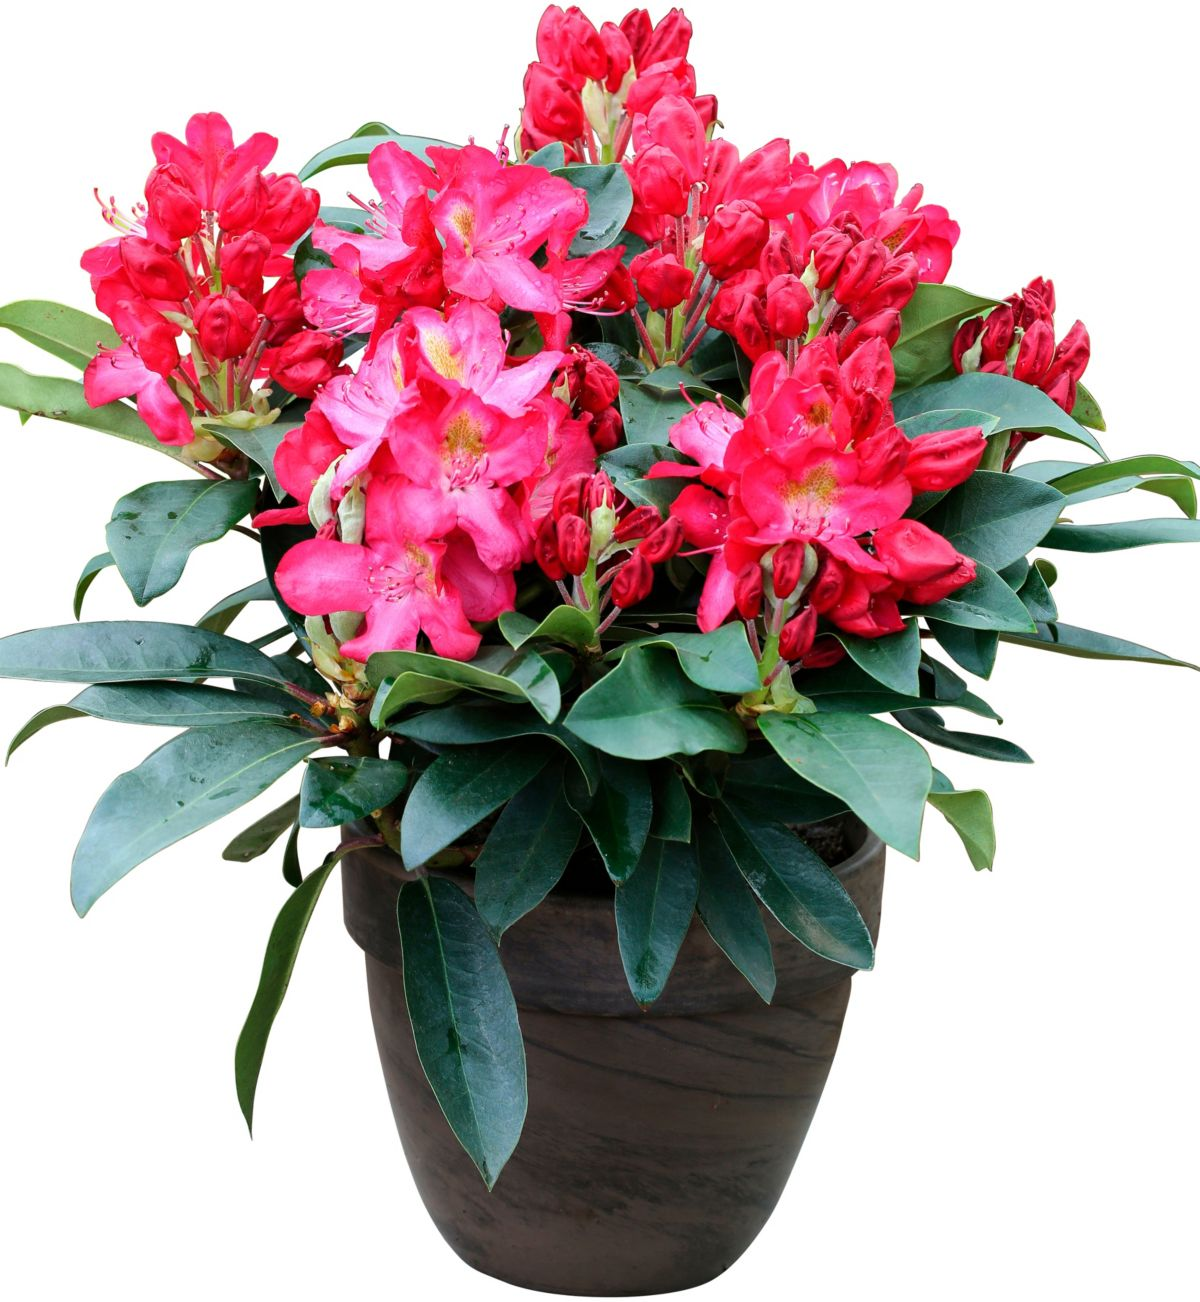 Rhododendron »Junifeuer«